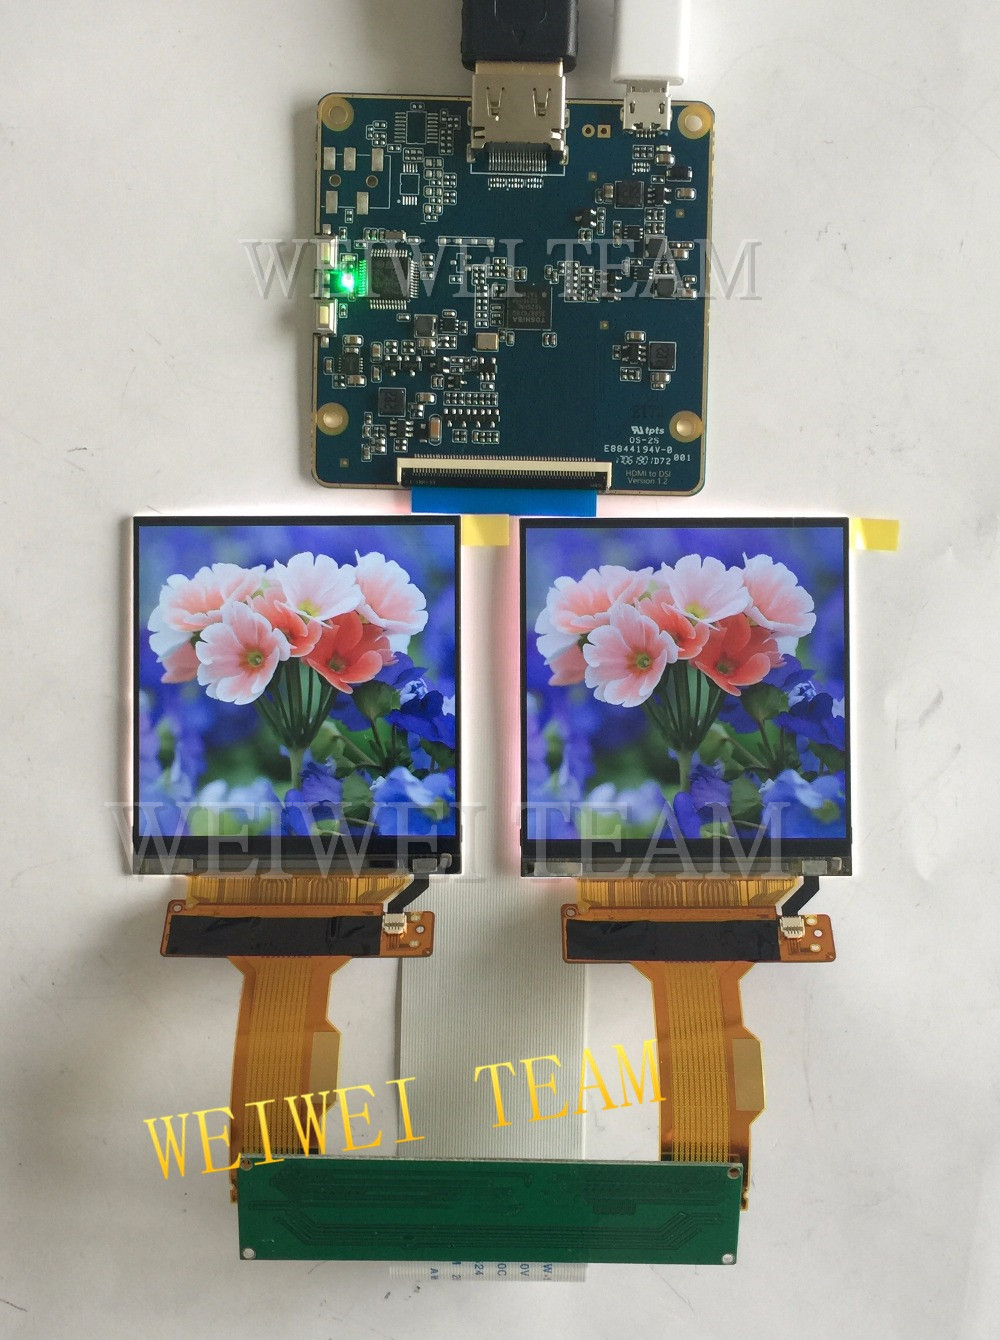 2.9 2880*1440 2K TFT LCD MIPI screen with HDMI to MIPI Dsi driver board for VR AR project2.9 2880*1440 2K TFT LCD MIPI screen with HDMI to MIPI Dsi driver board for VR AR project